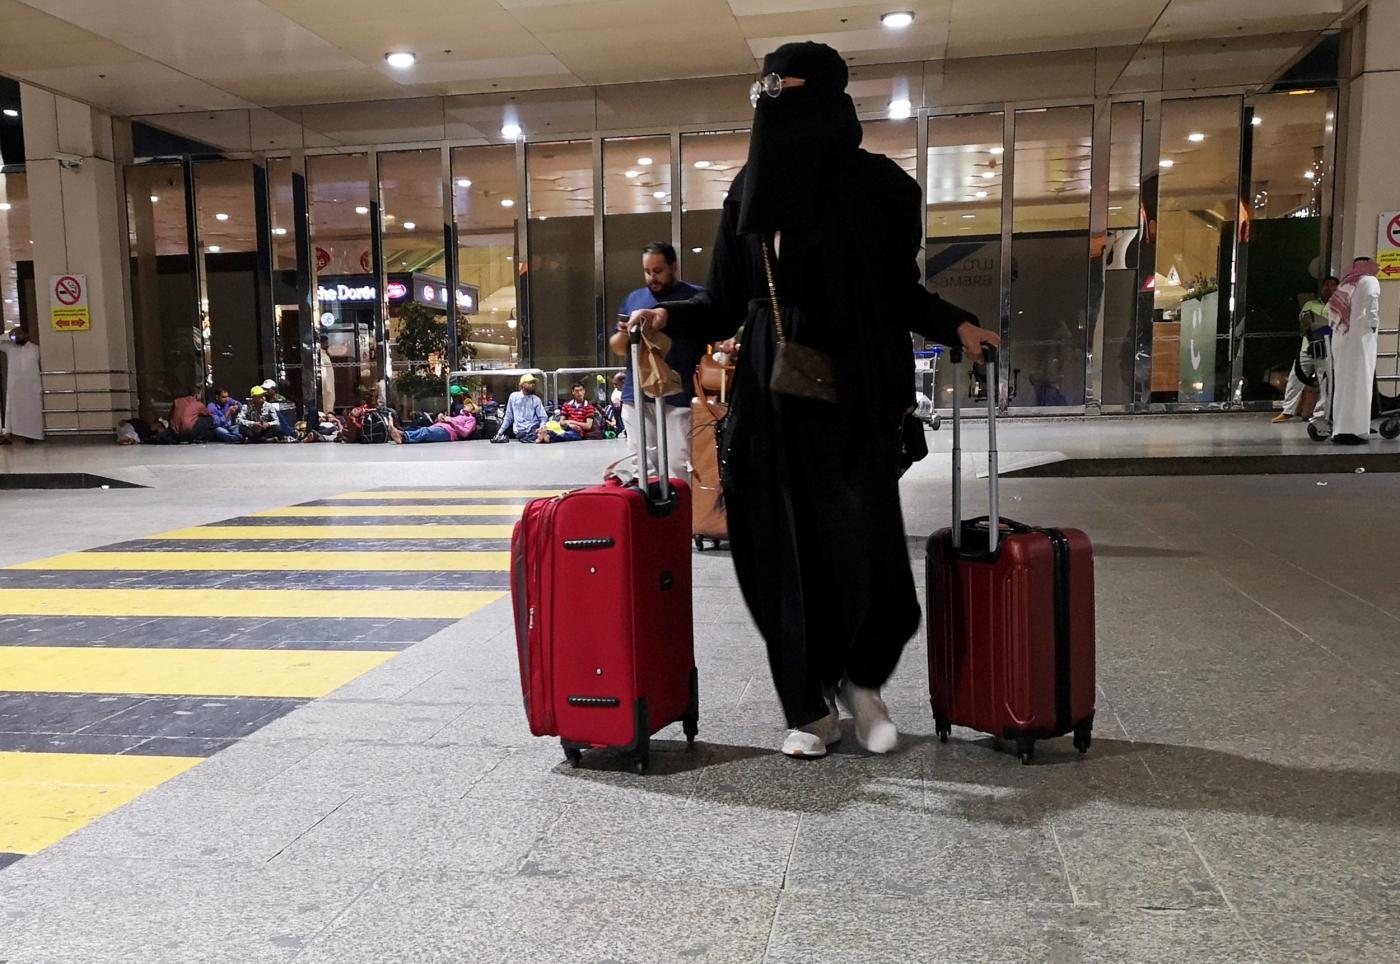 Saudi Arabia ends travel restrictions for women